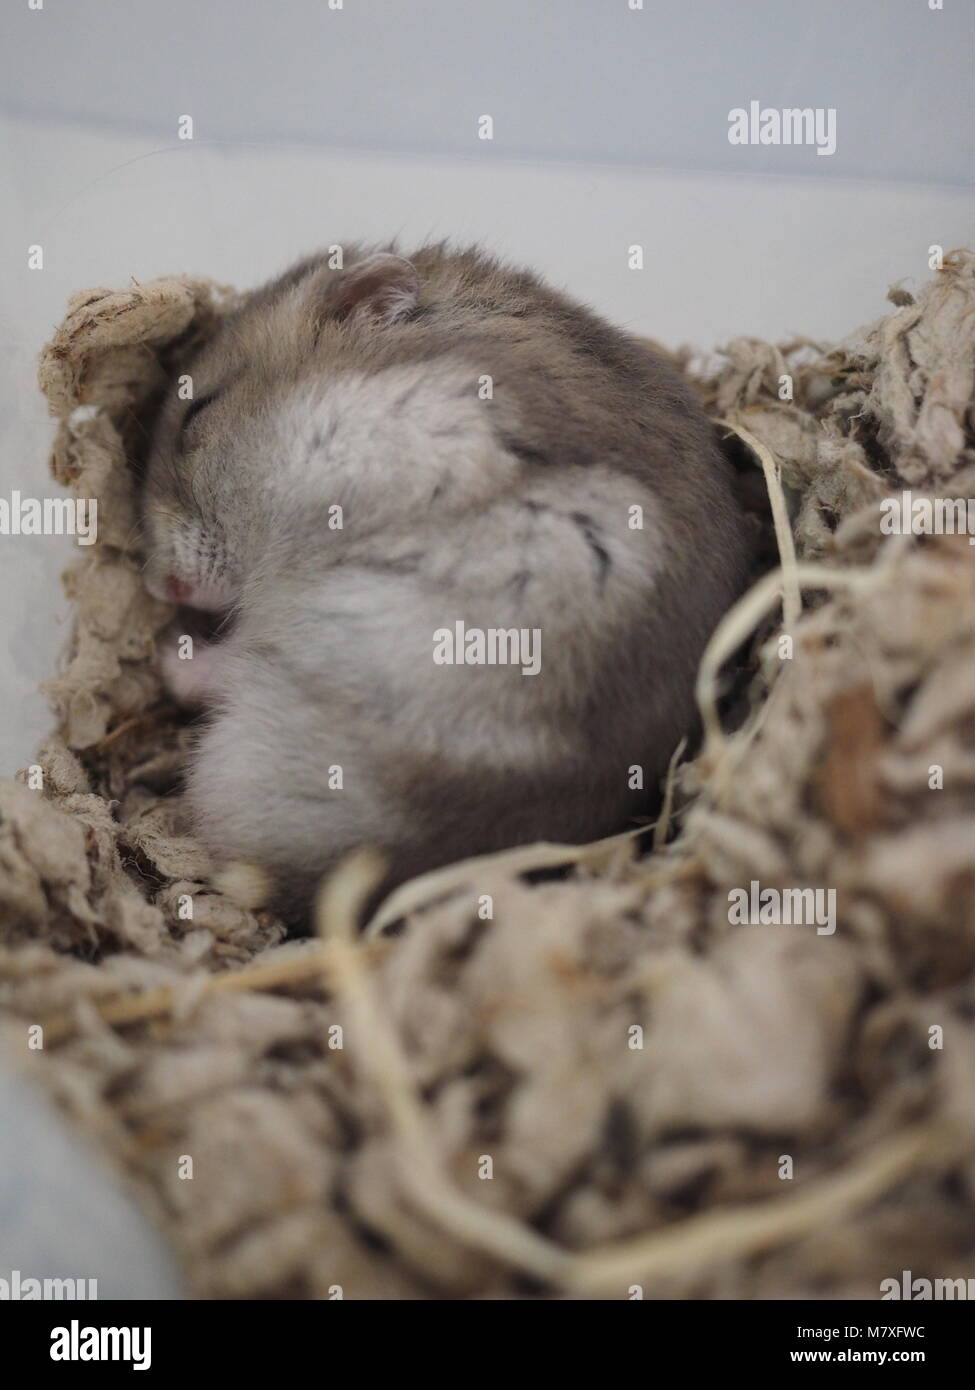 Sleeping Beauty Hamster - Stock Image